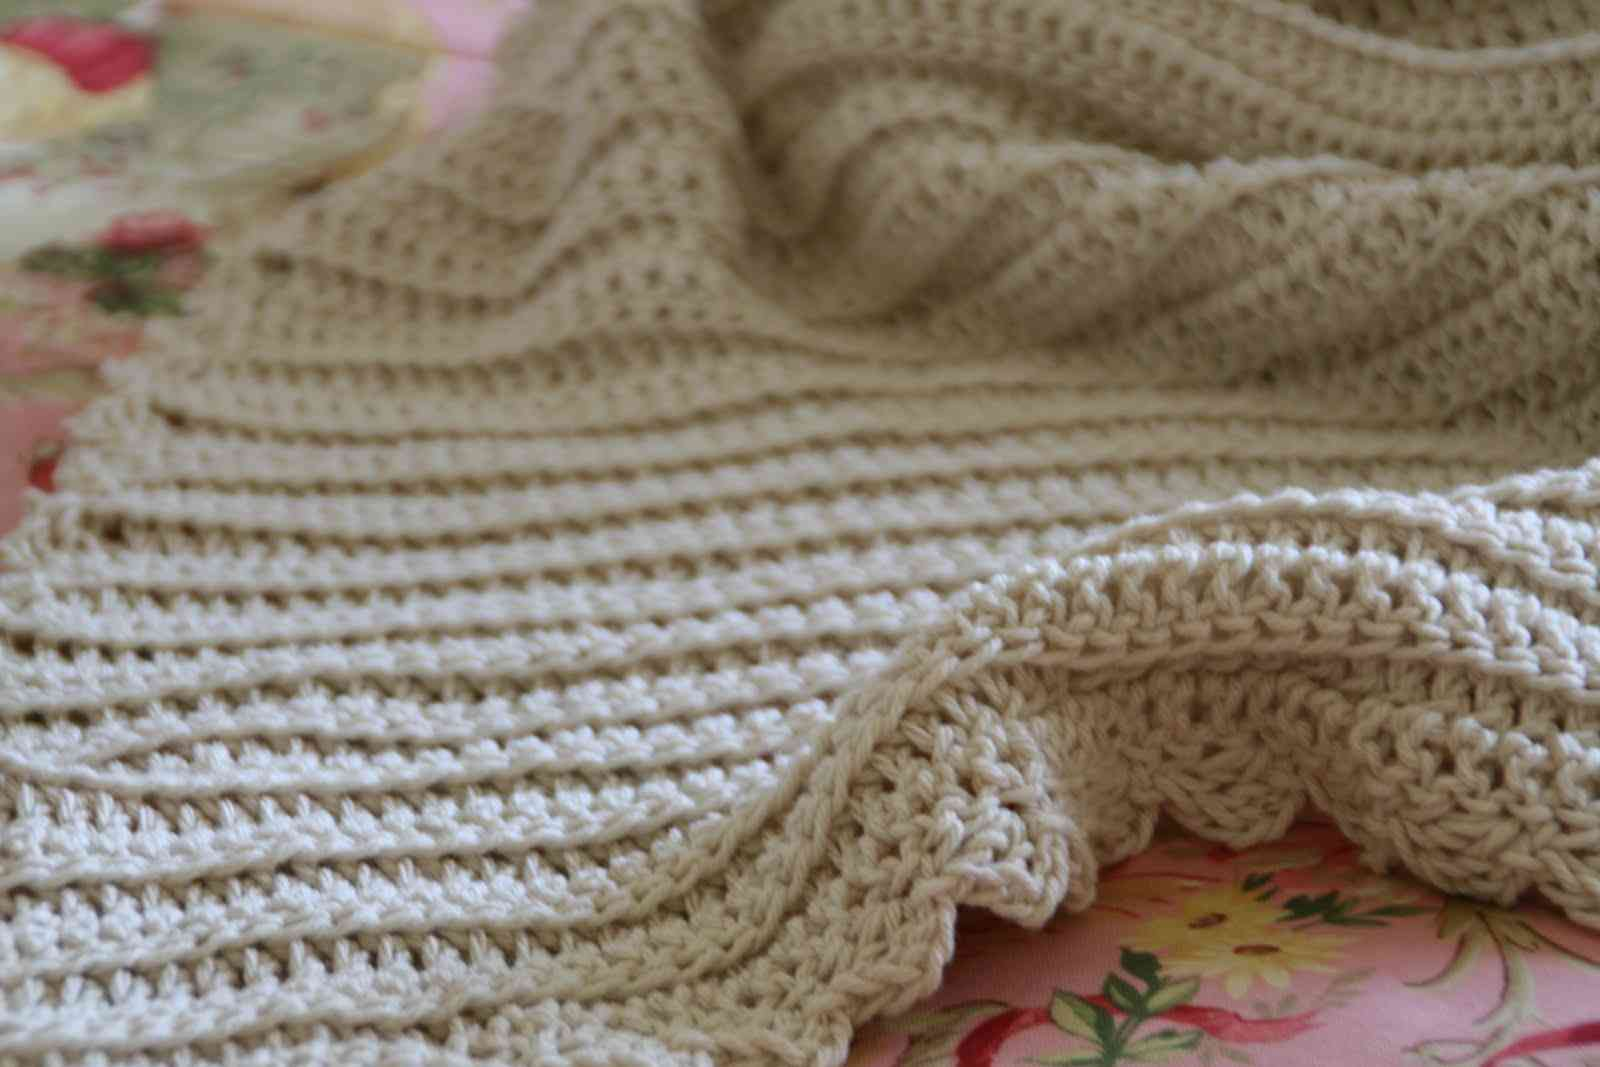 Crochet Patterns Of Baby Blankets : Crochet Baby Blanket Patterns LONG HAIRSTYLES